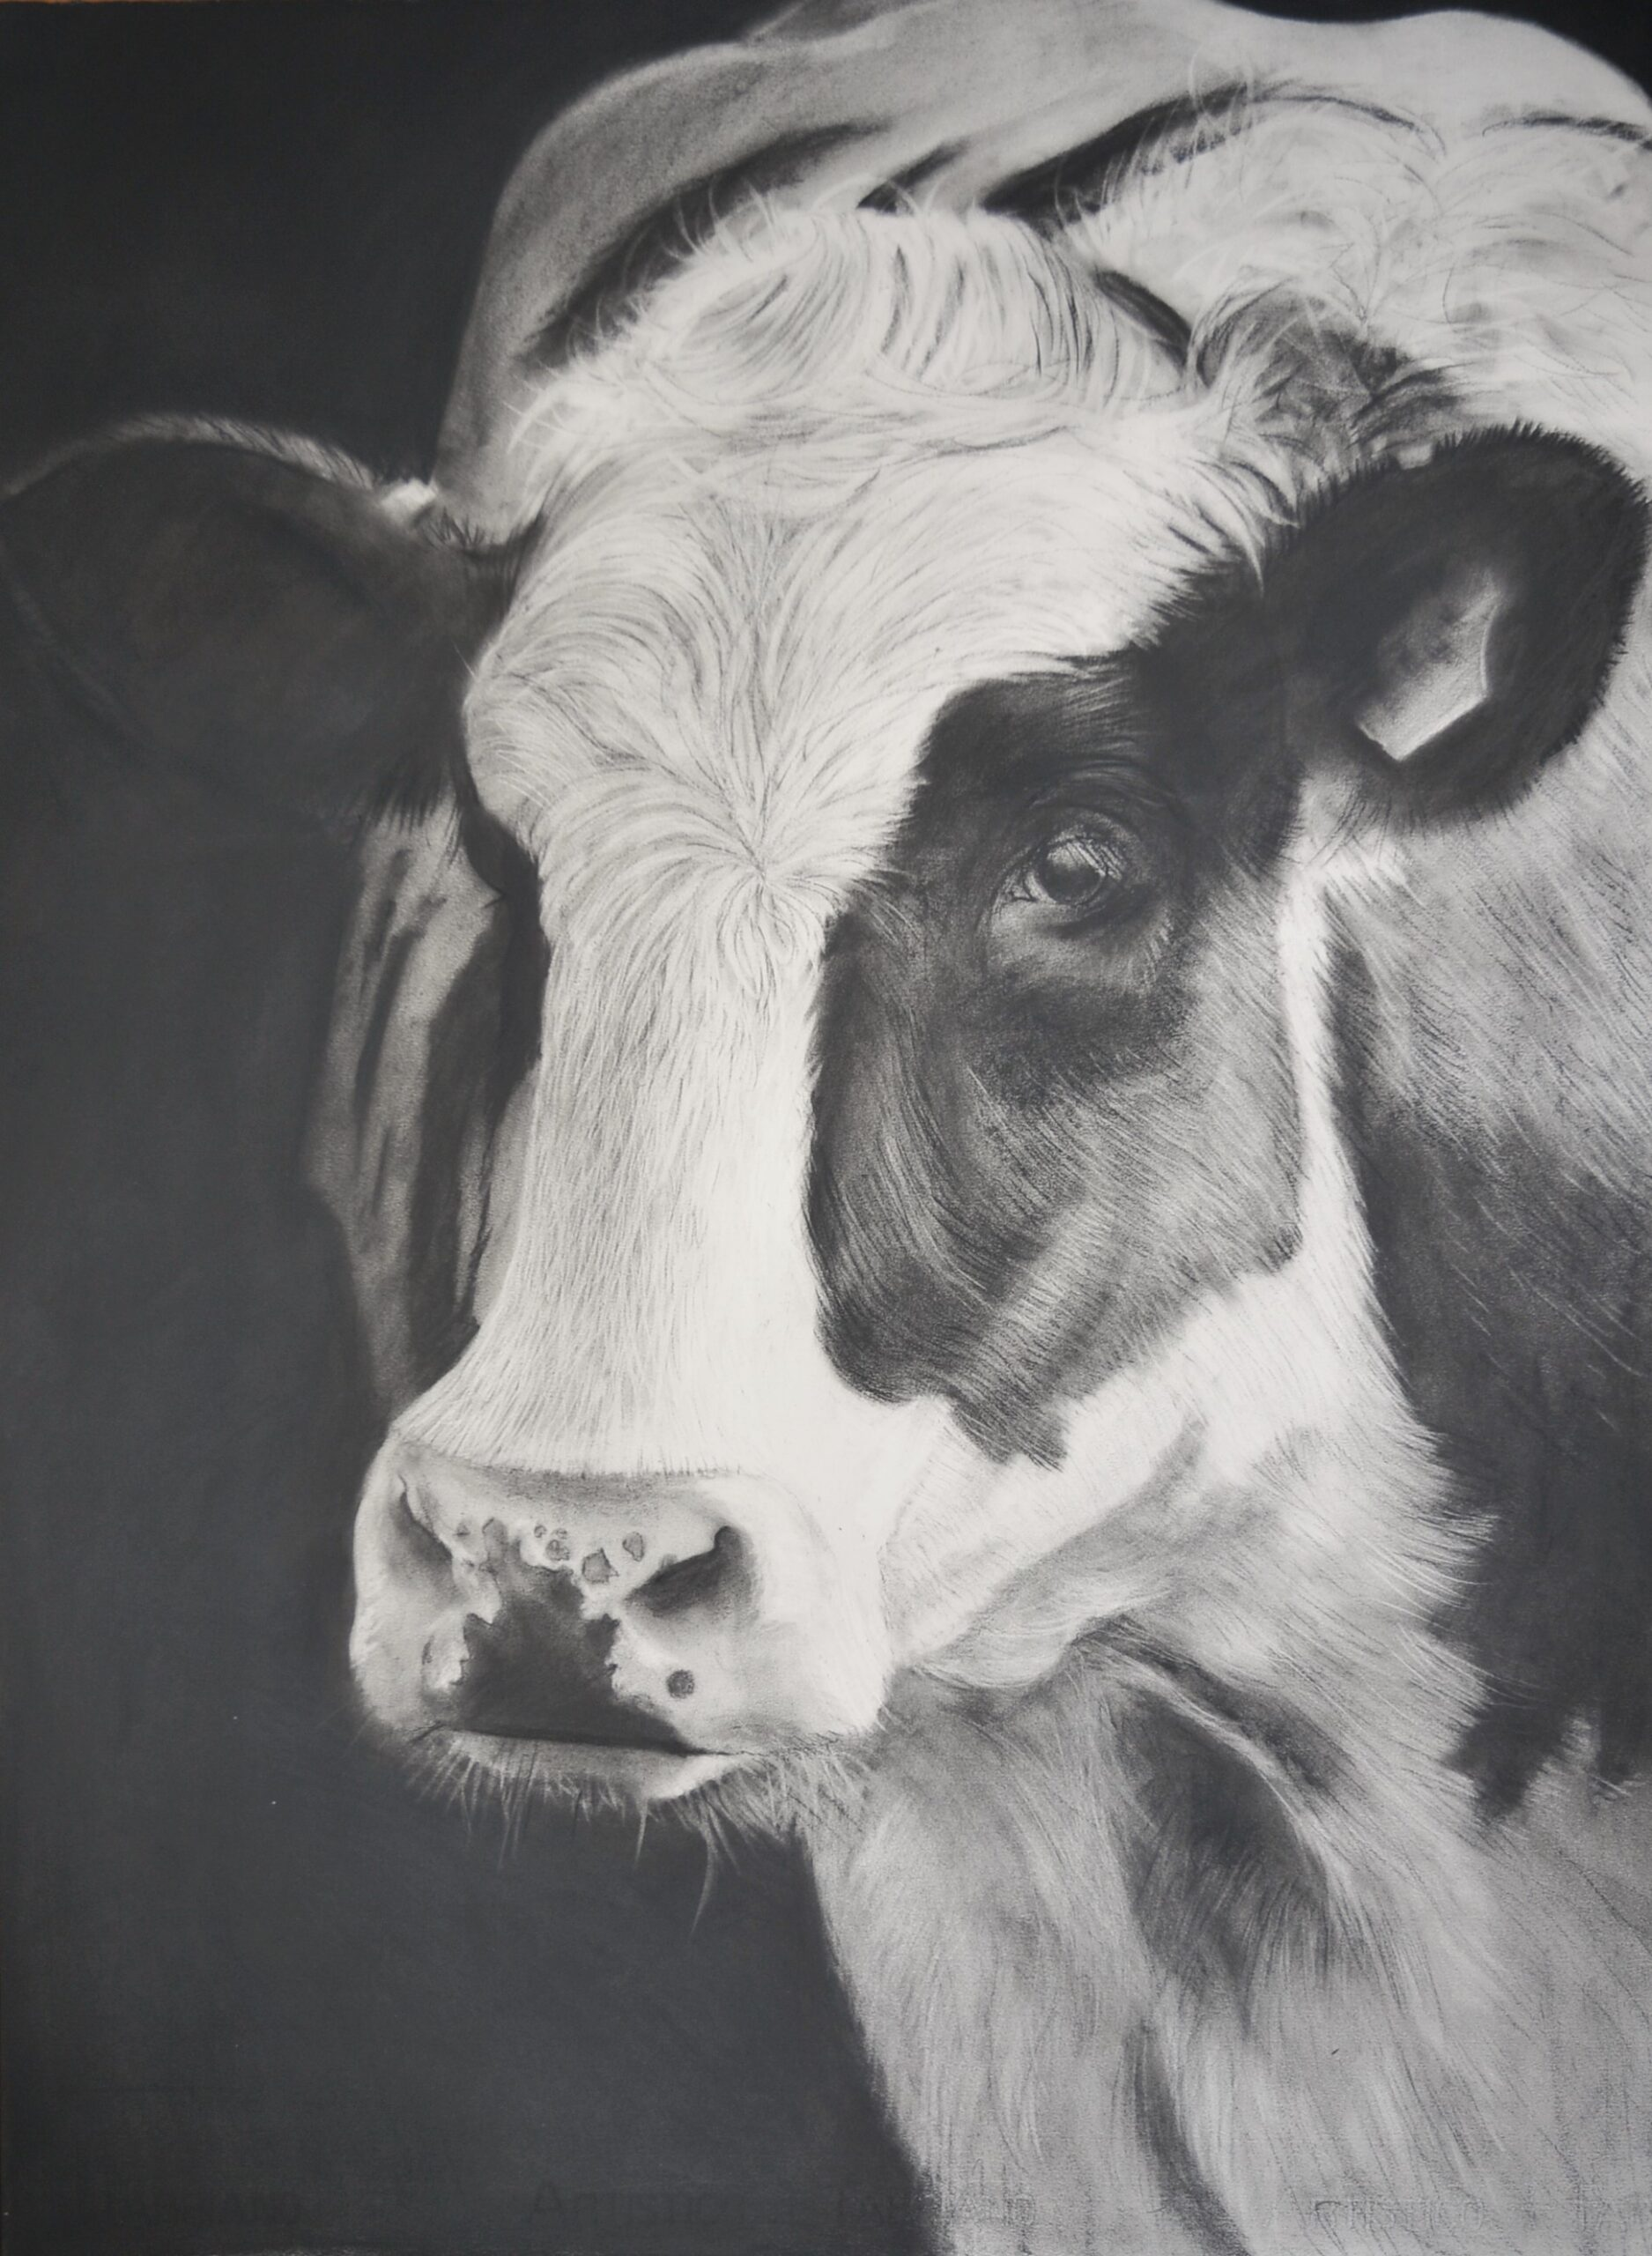 Charcoal drawing of a black and white cow